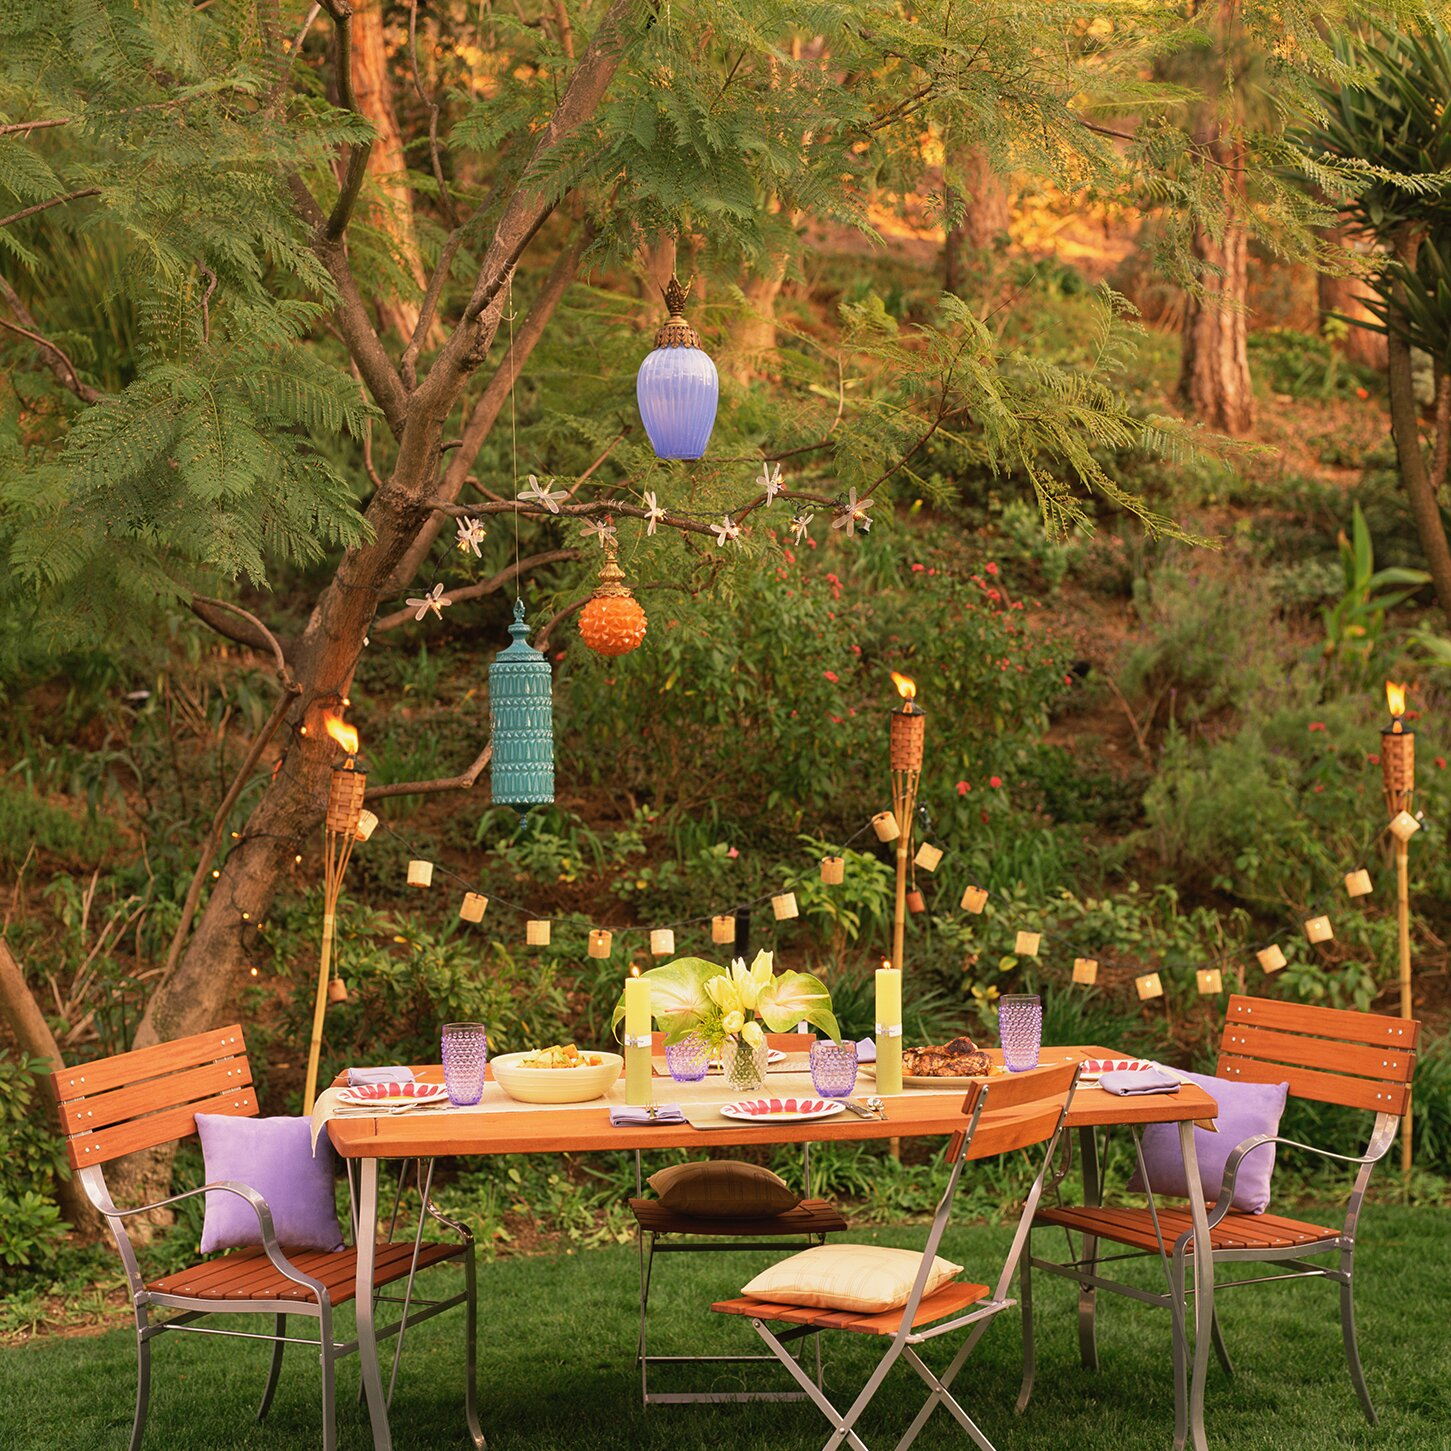 17 Outdoor Party Ideas For An Effortless Backyard Gathering Real